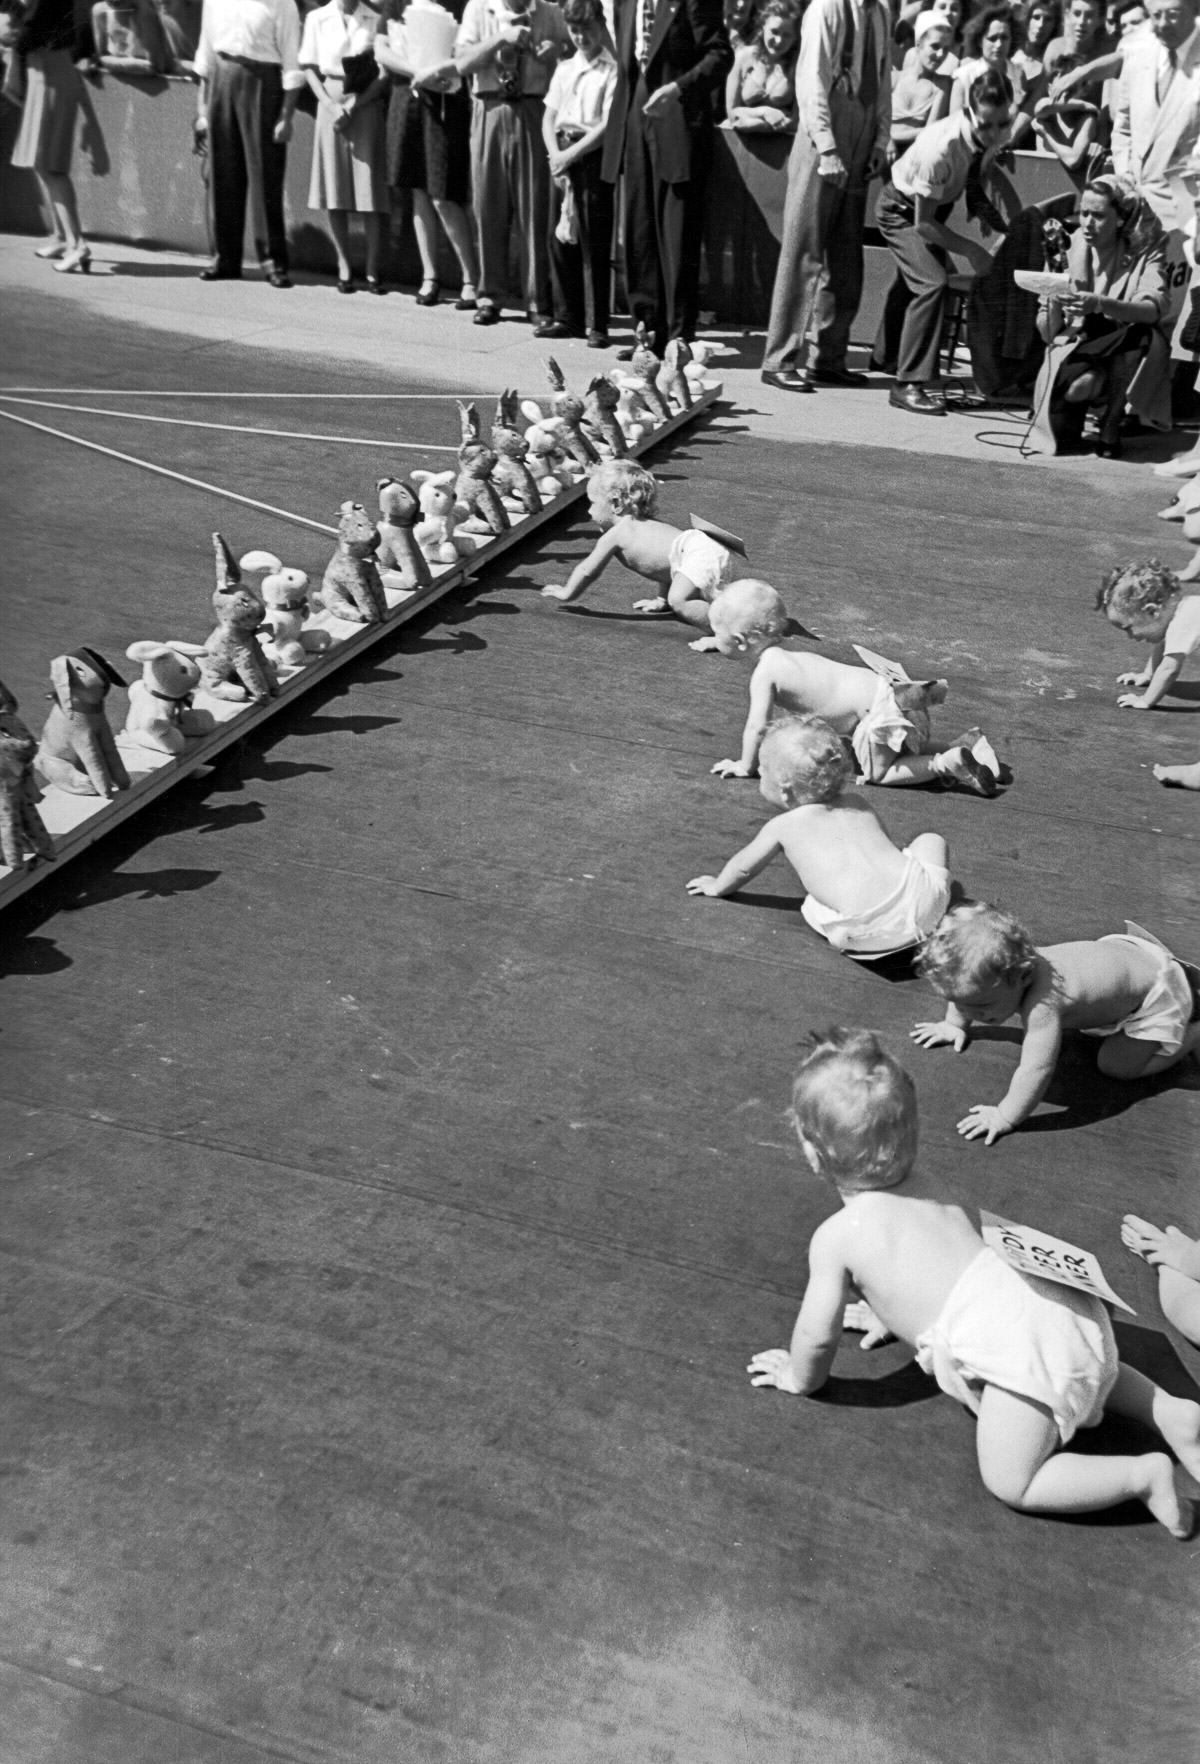 UNILAD CORNELL CAPATHE LIFE PICTURE COLLECTIONGETTY IMAGES 33 Baby Racing Used To Be A Real Life Actual Sport, And It Was Amazing